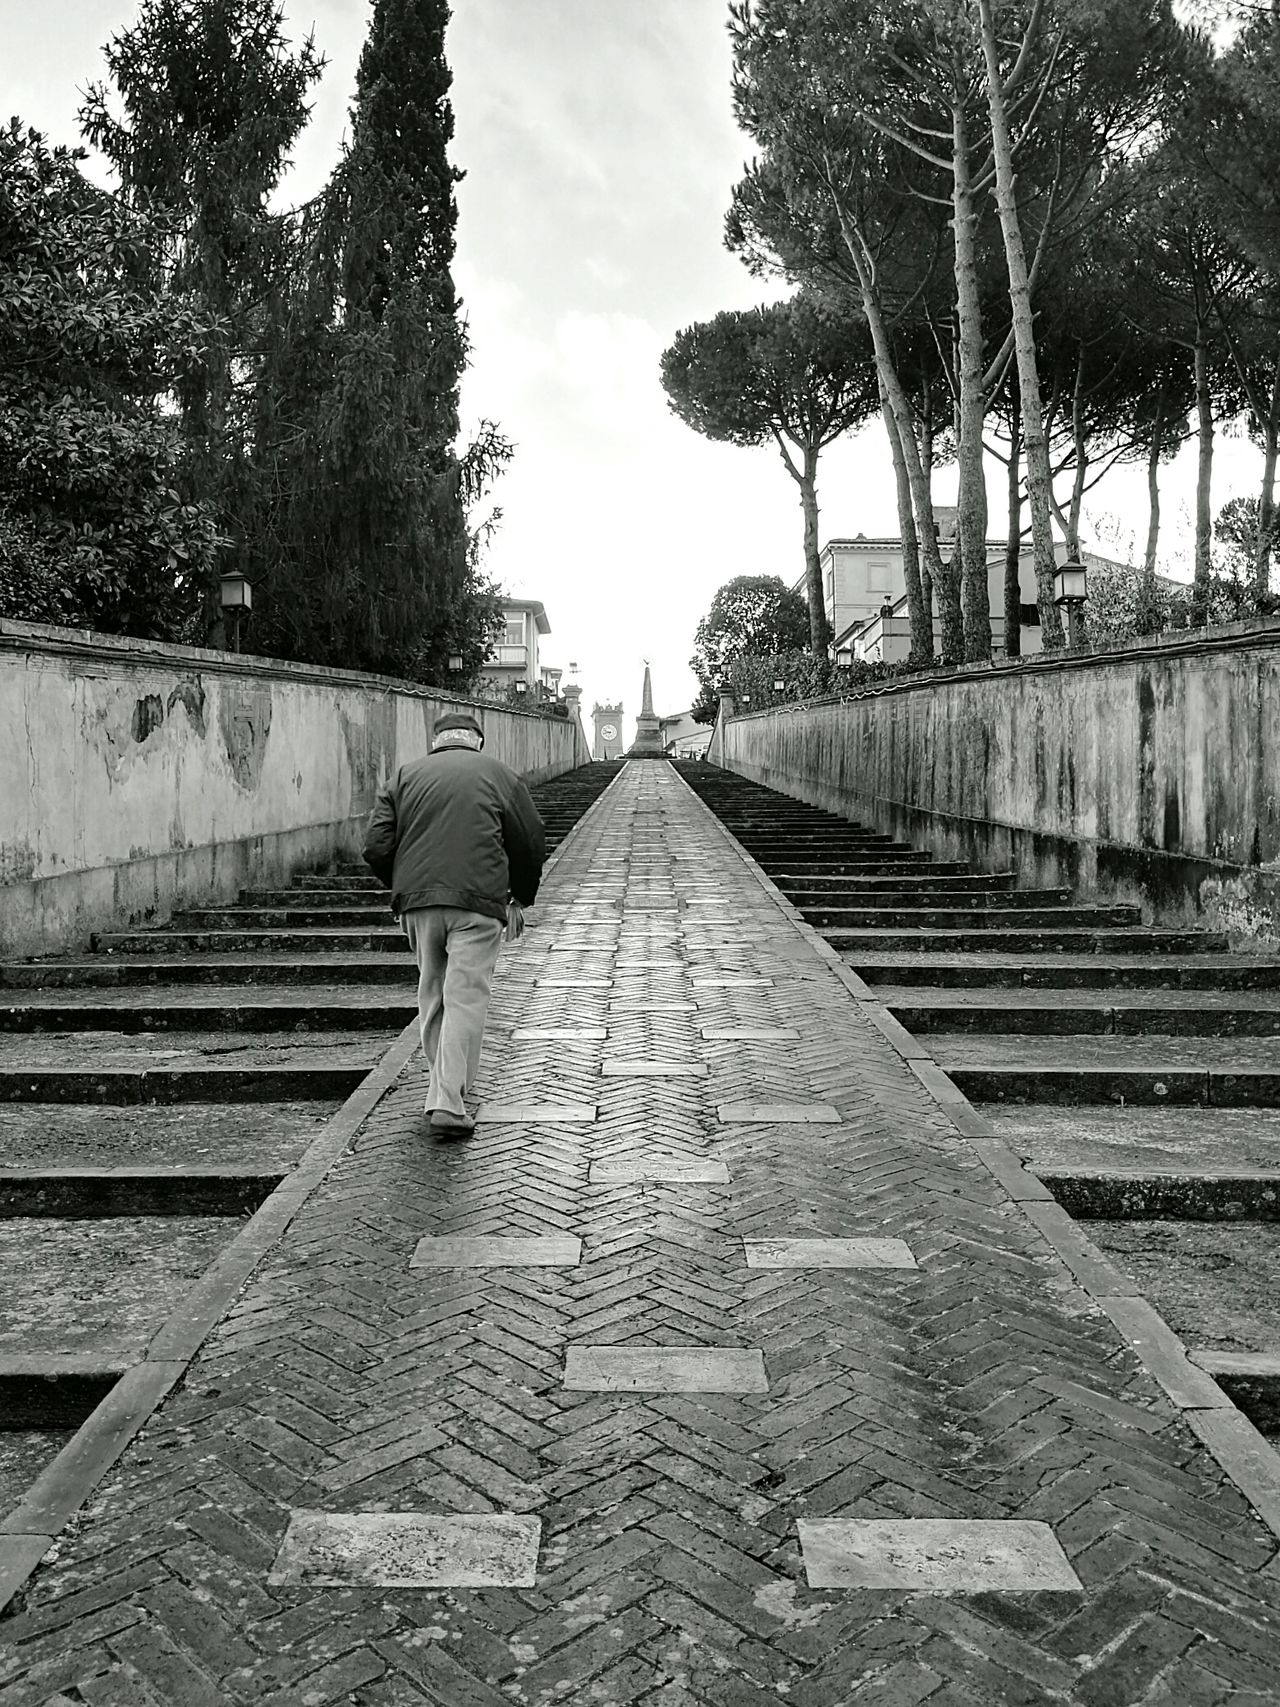 It's Cold Outside EyeEm Gallery EyeEm Best Shots - Black + White Black And White Bianco E Nero Grey Grigio Streetphotography Streetphoto_bw Old Man Signore Walking Alone... Alone Solo Camminando Three Alberi EyeEm Nature Lover Scale  Stairs Nofilter PhonePhotography Photography HuaweiP8 Capture The Moment